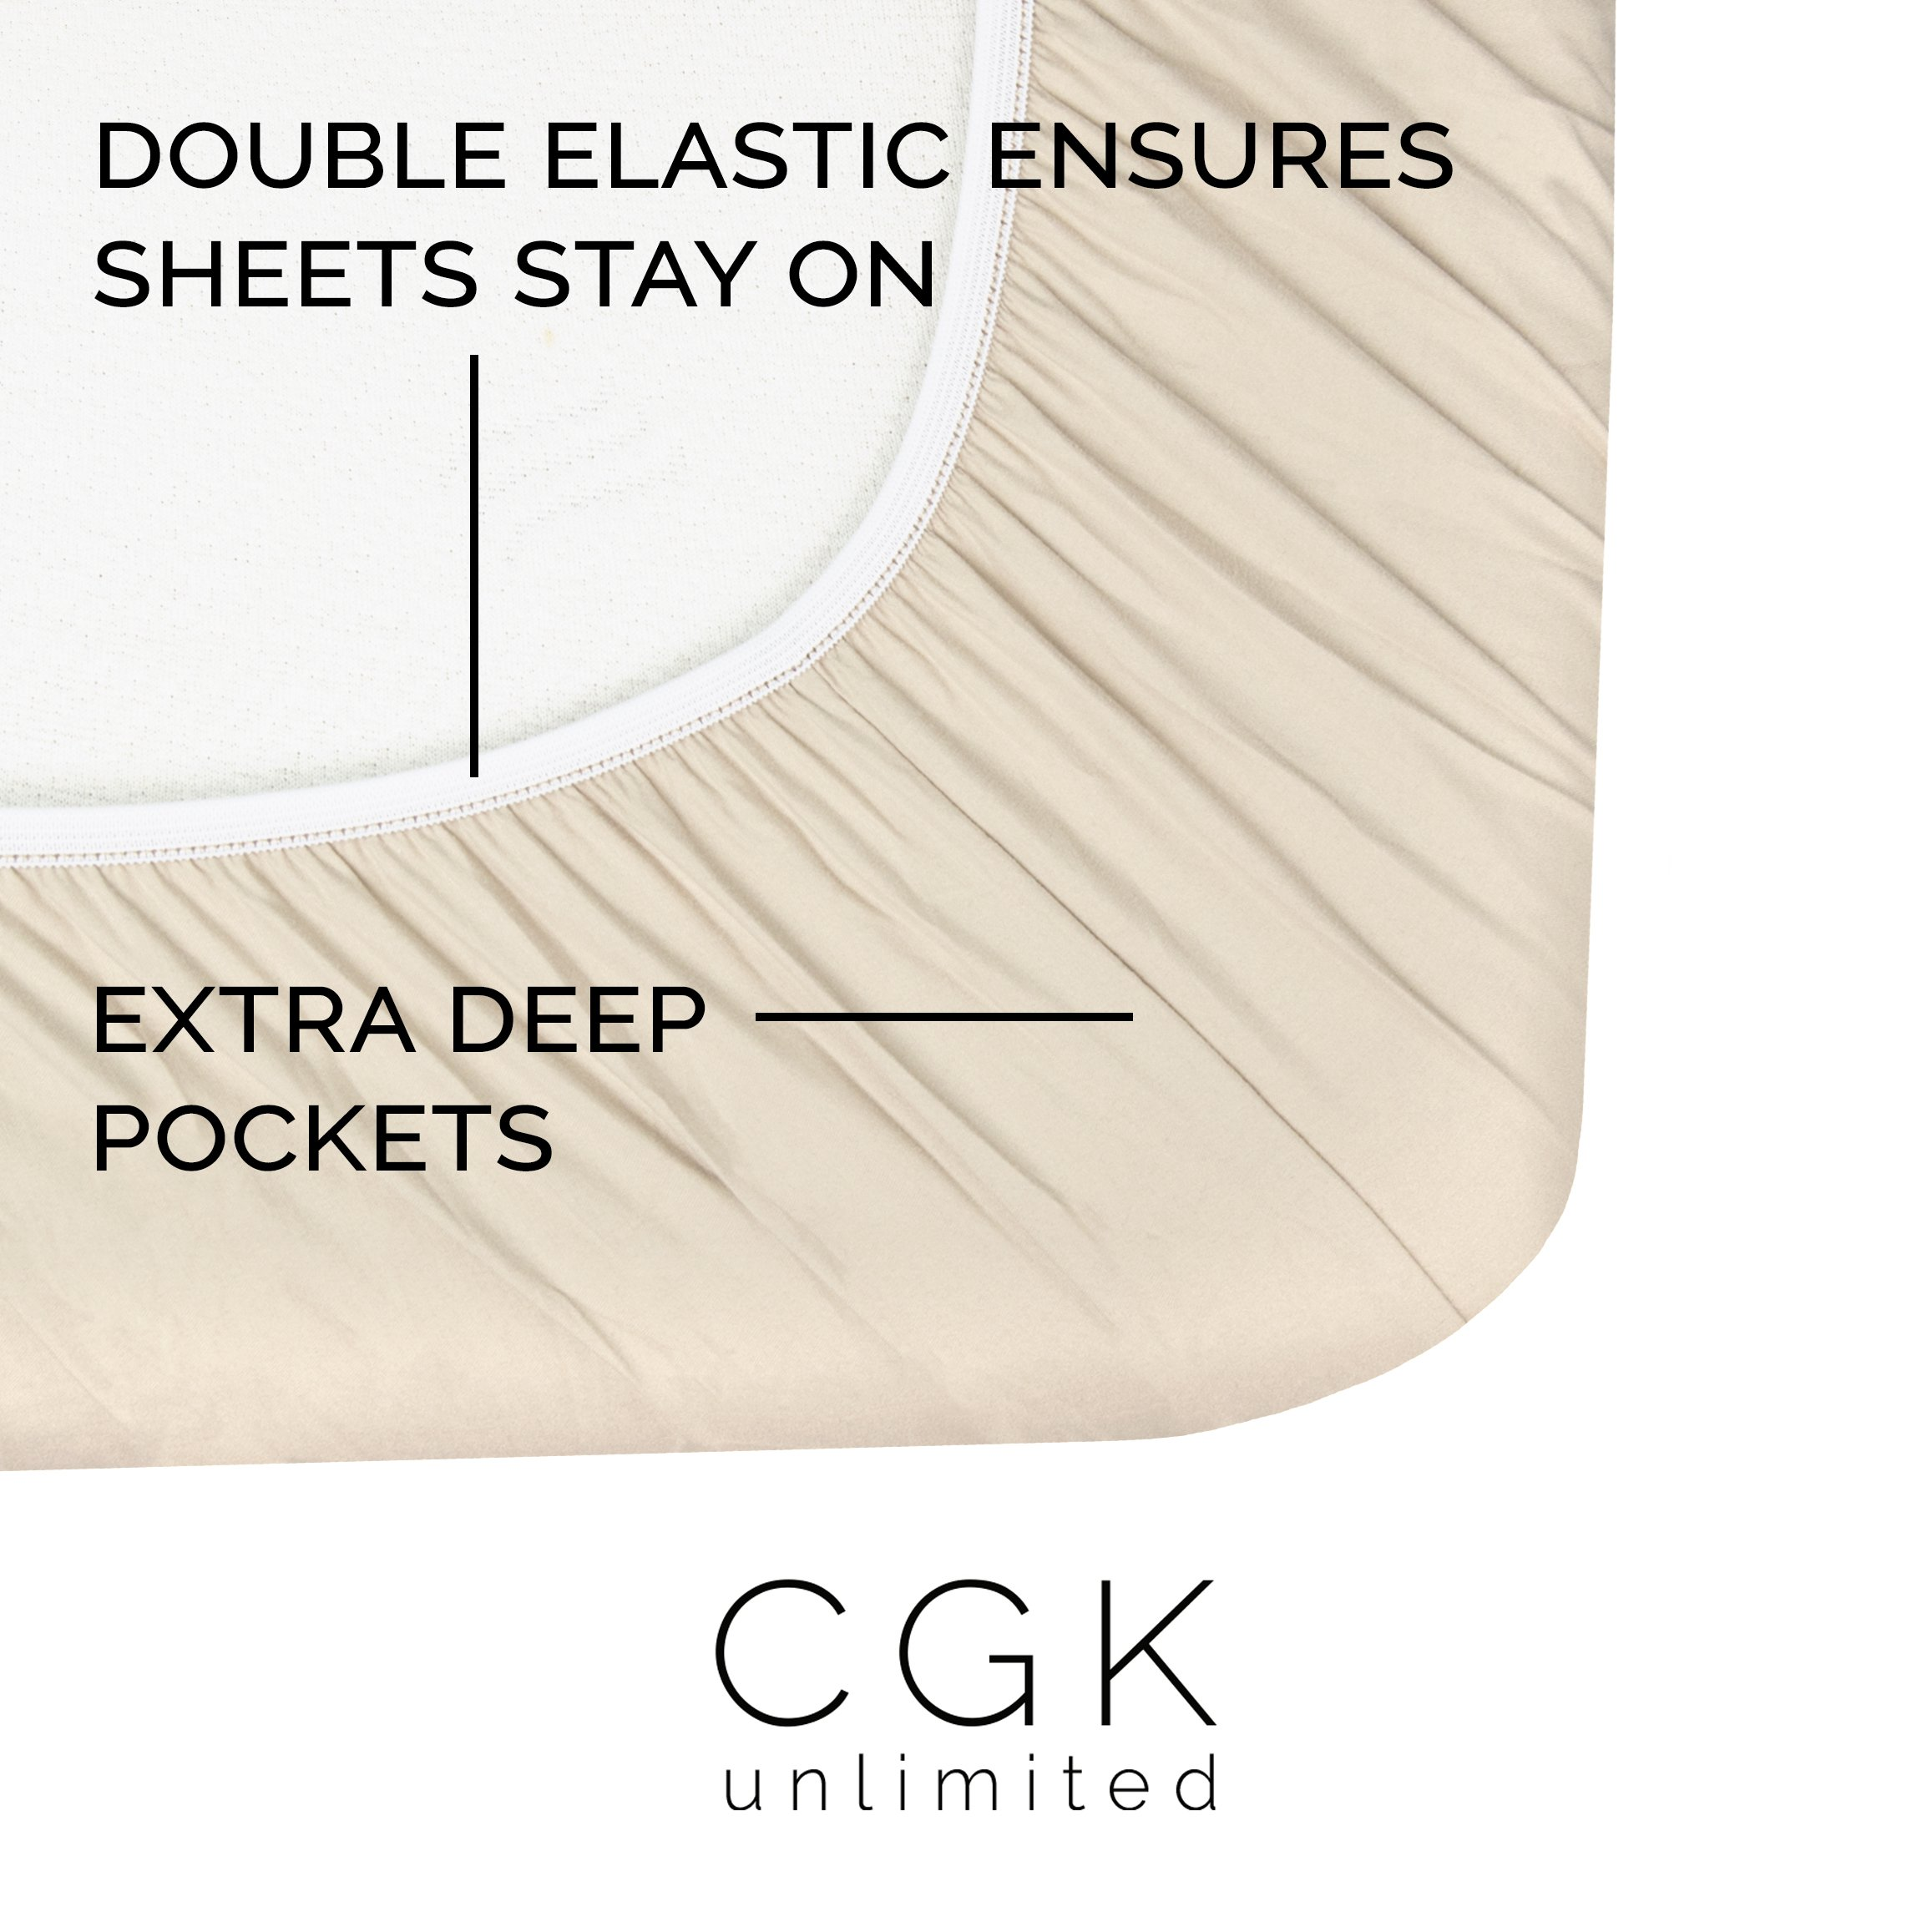 Queen Size Sheet Set - 4 Piece Set - Hotel Luxury Bed Sheets - Extra Soft - Deep Pockets - Easy Fit - Breathable & Cooling - Wrinkle Free - Comfy – Beige Tan Bed Sheets - Queens Sheets – 4 PC by CGK Unlimited (Image #2)